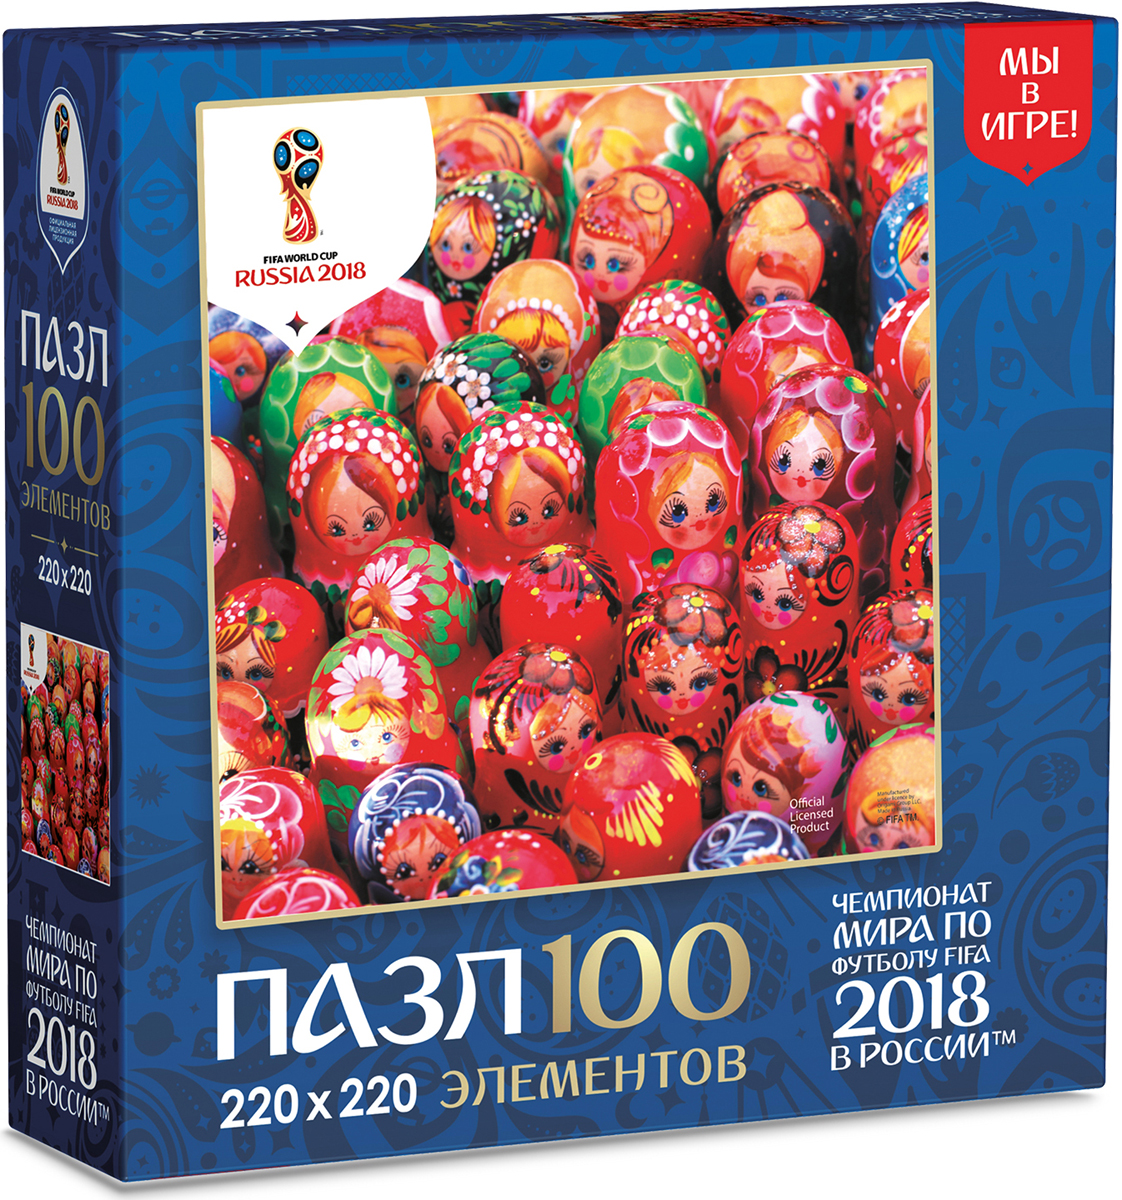 все цены на FIFA World Cup Russia 2018 Пазл Матрешки Ярмарка матрешек 03802 онлайн